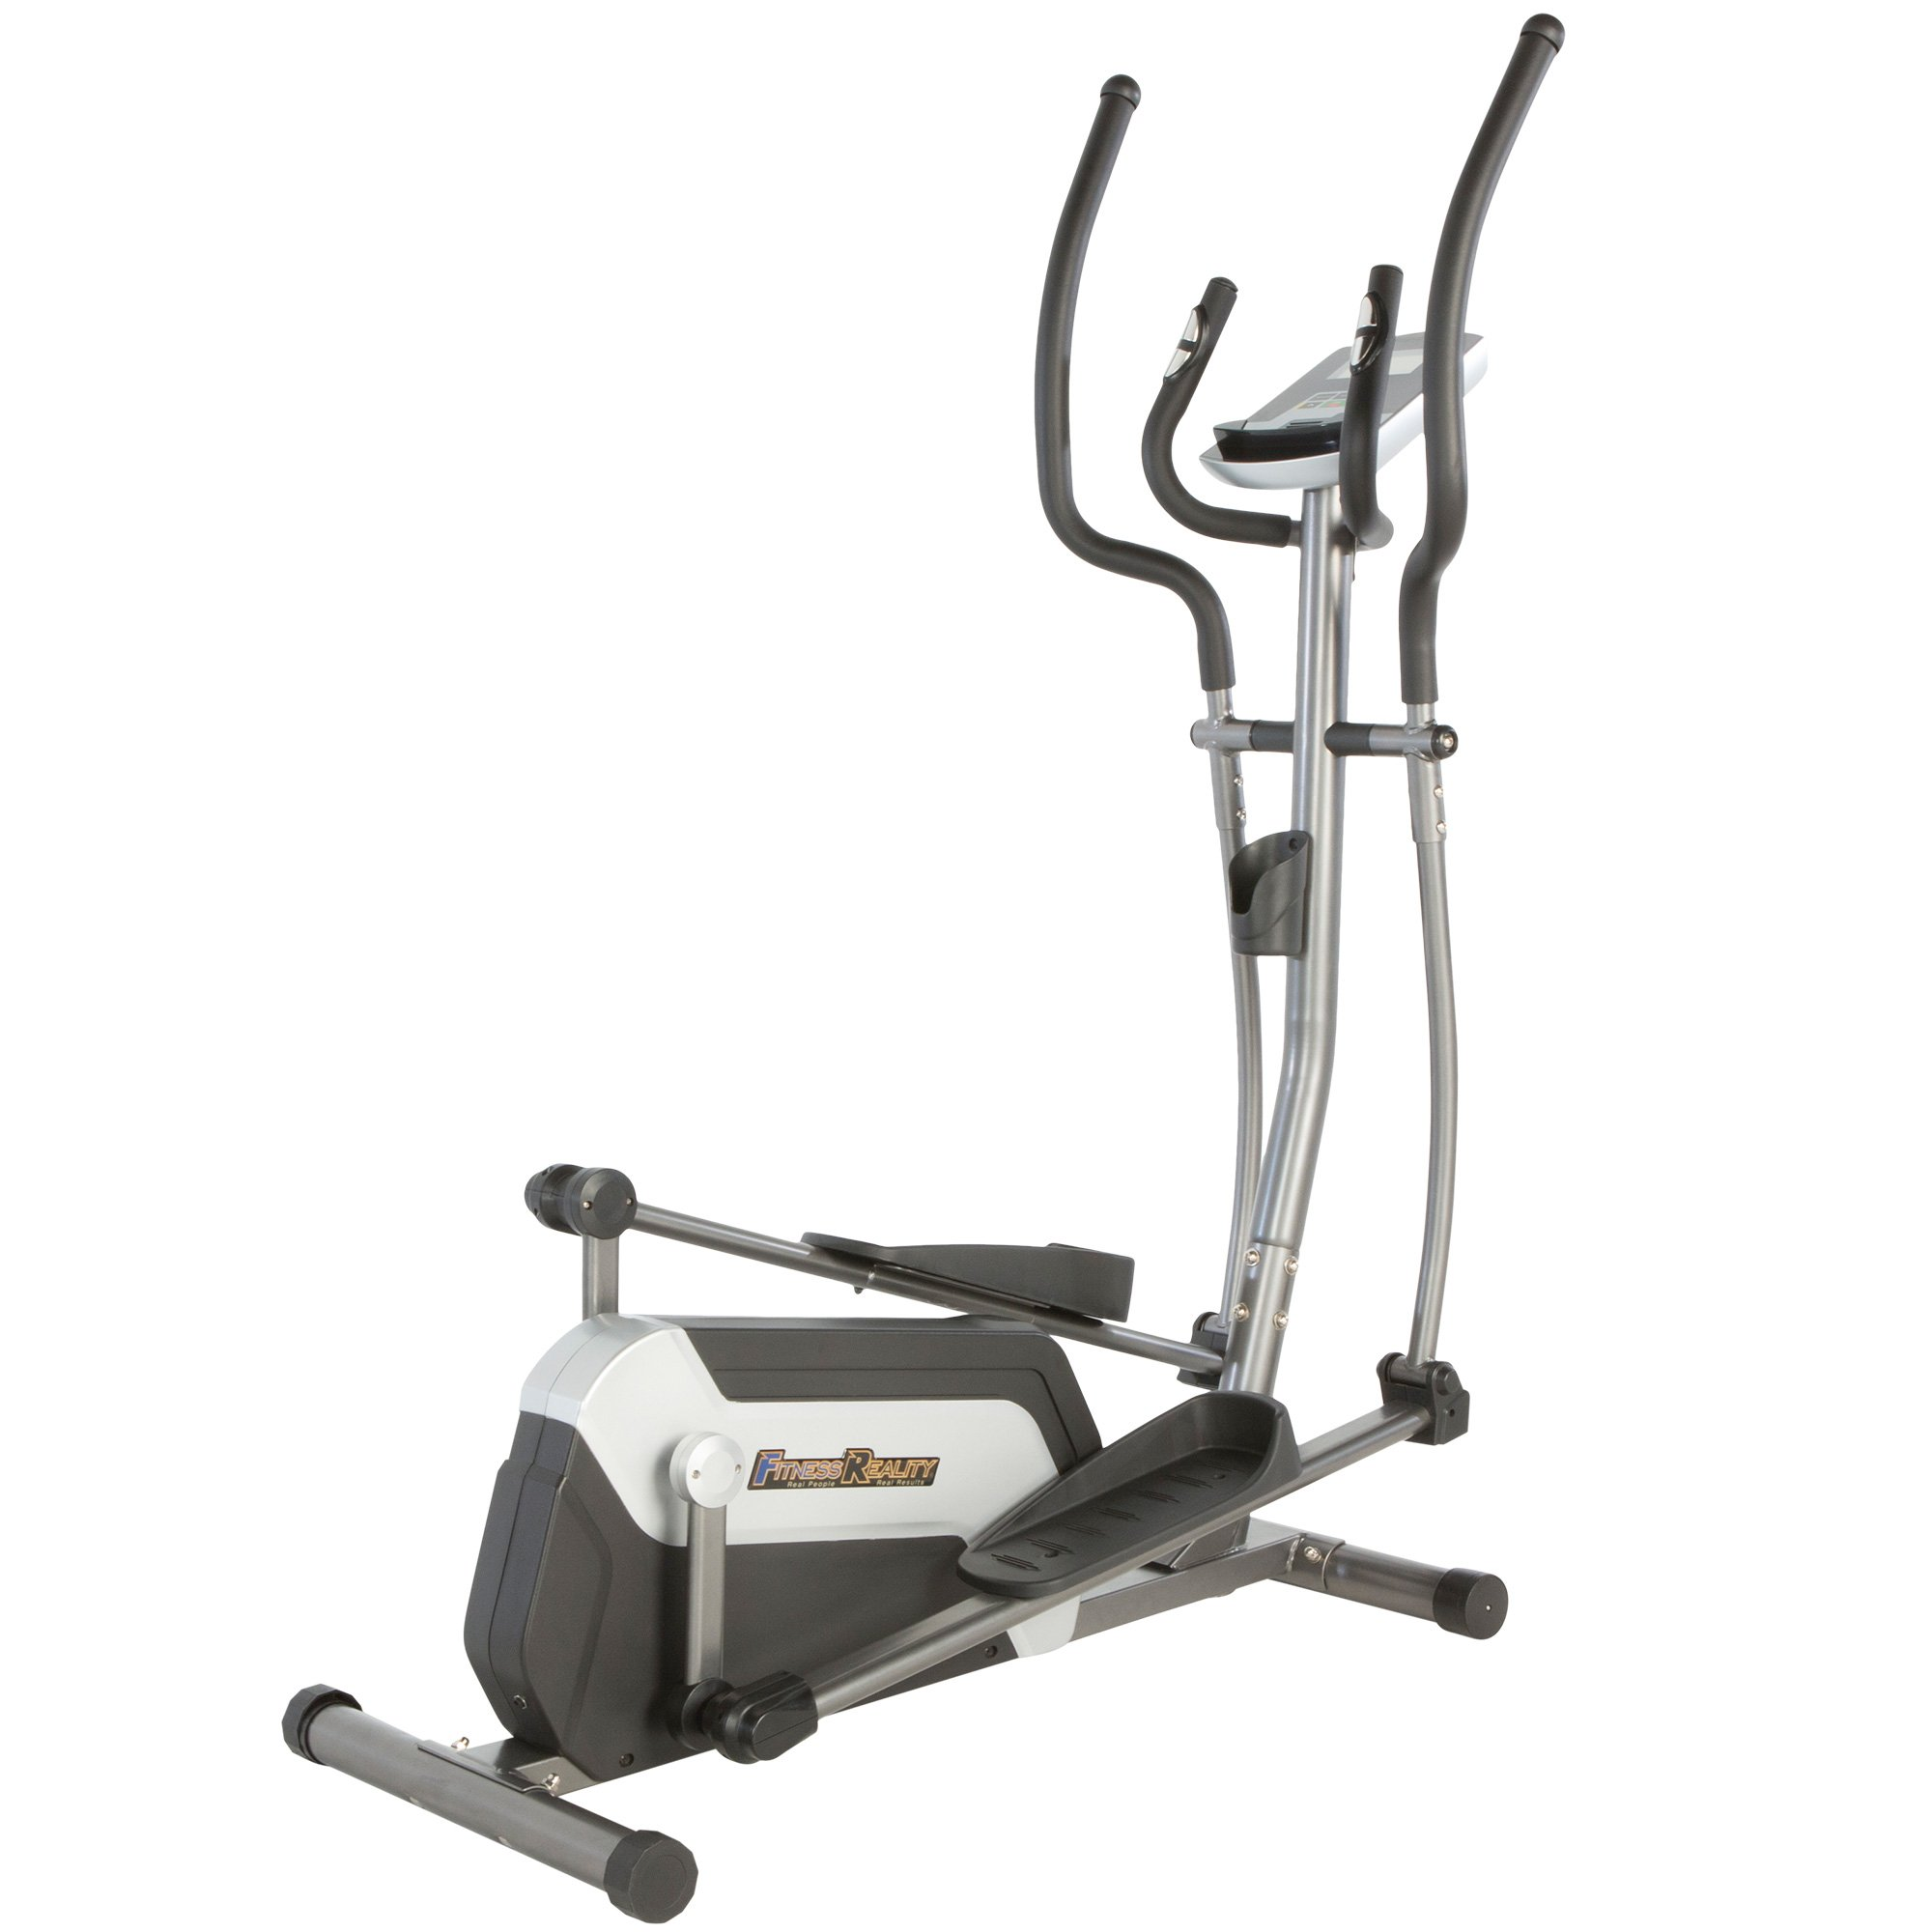 Fitness Reality E5500XL Magnetic Elliptical Trainer with Comfortable 18'' Stride by Fitness Reality (Image #2)